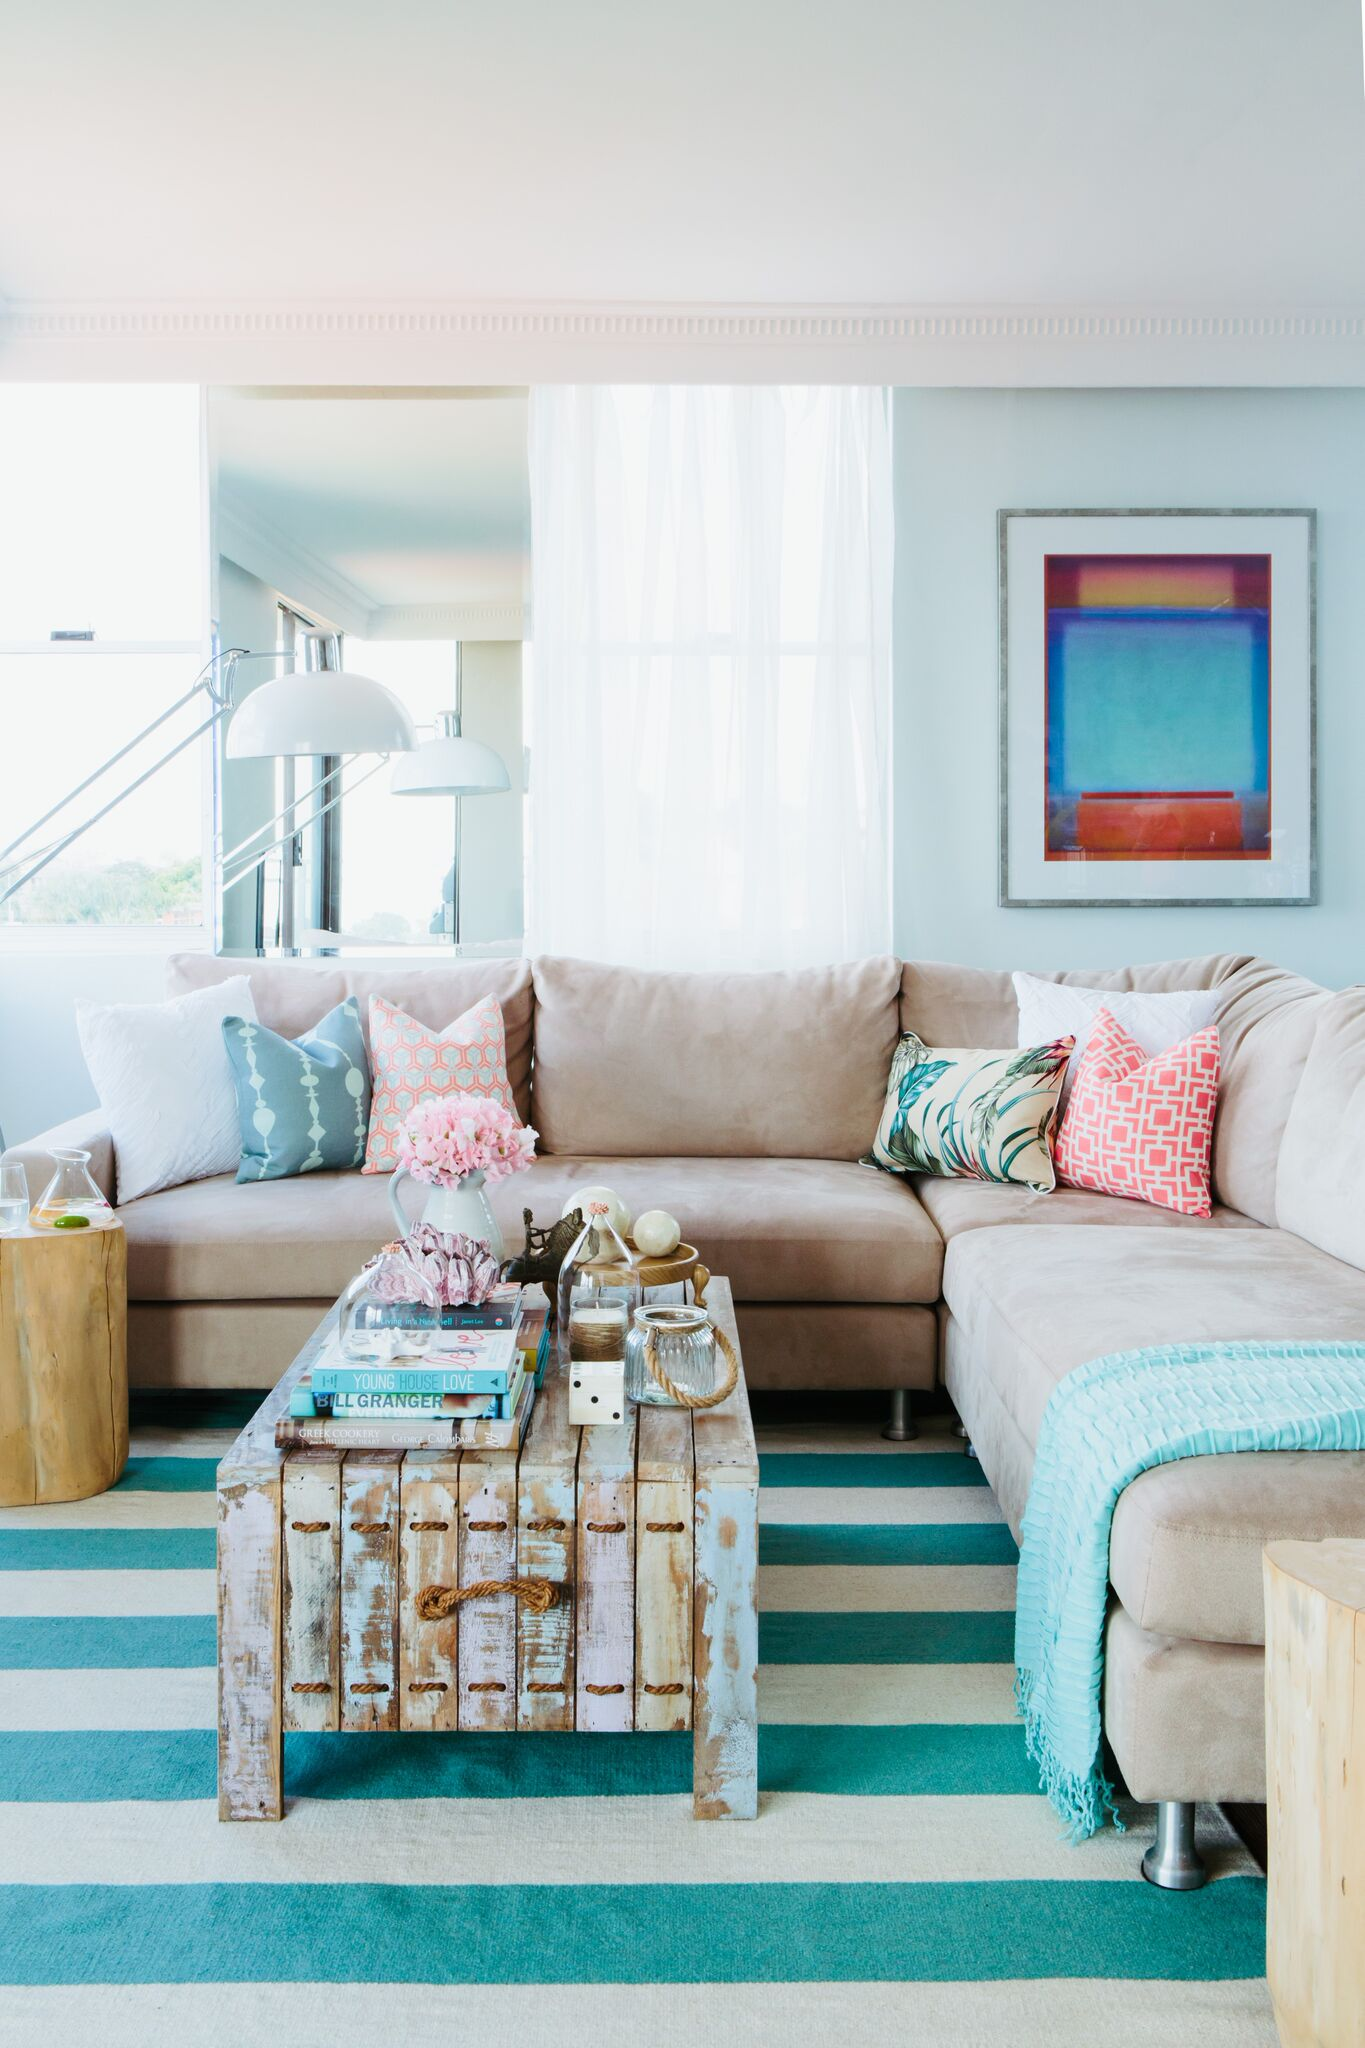 living room turquoise  living room with turquoise accents 10 ideas for how to decorate your living room with turquoise accents living room turquoise 10